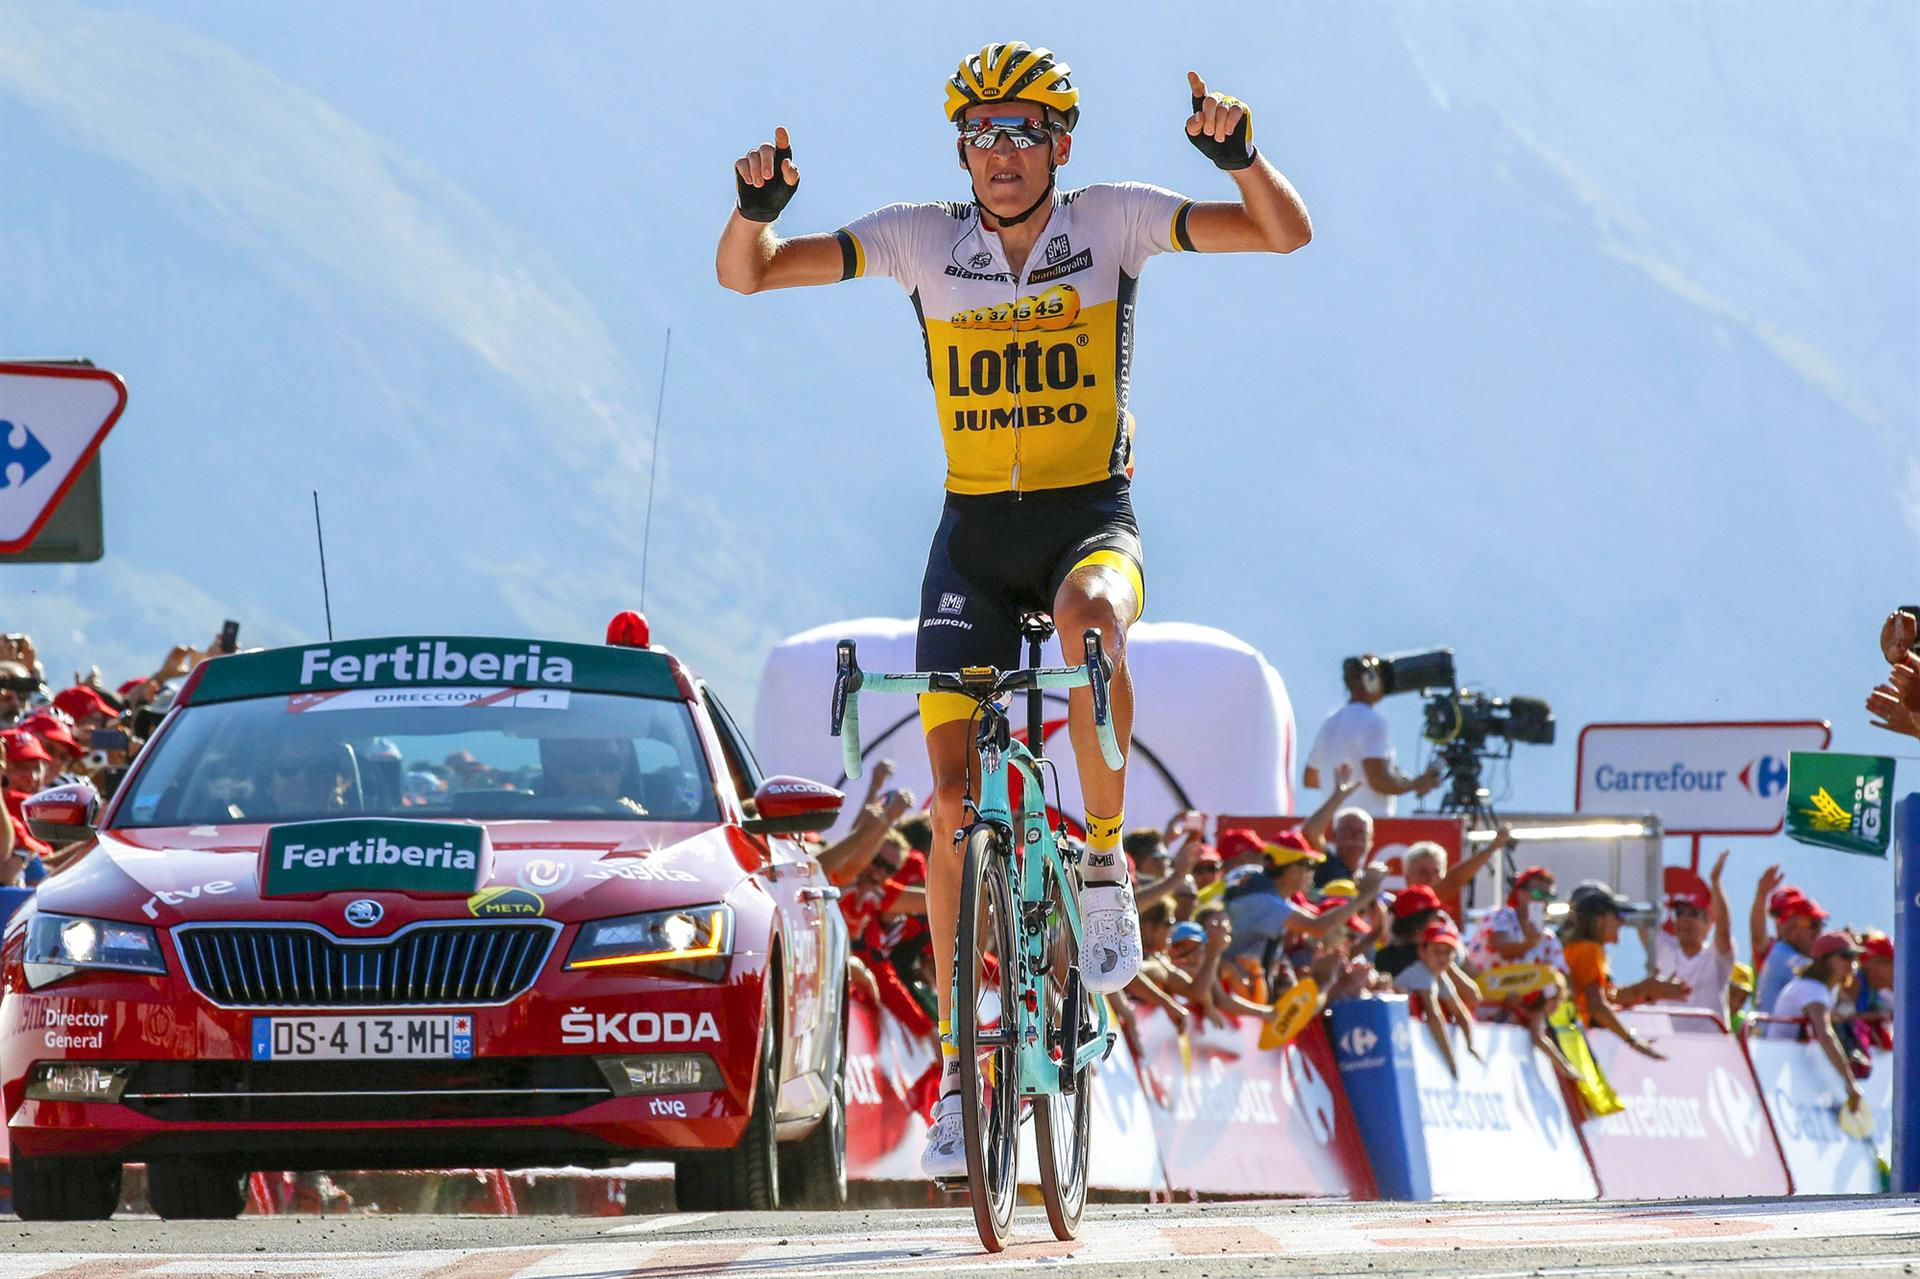 Robert Gesink's win at Vuelta a Espana